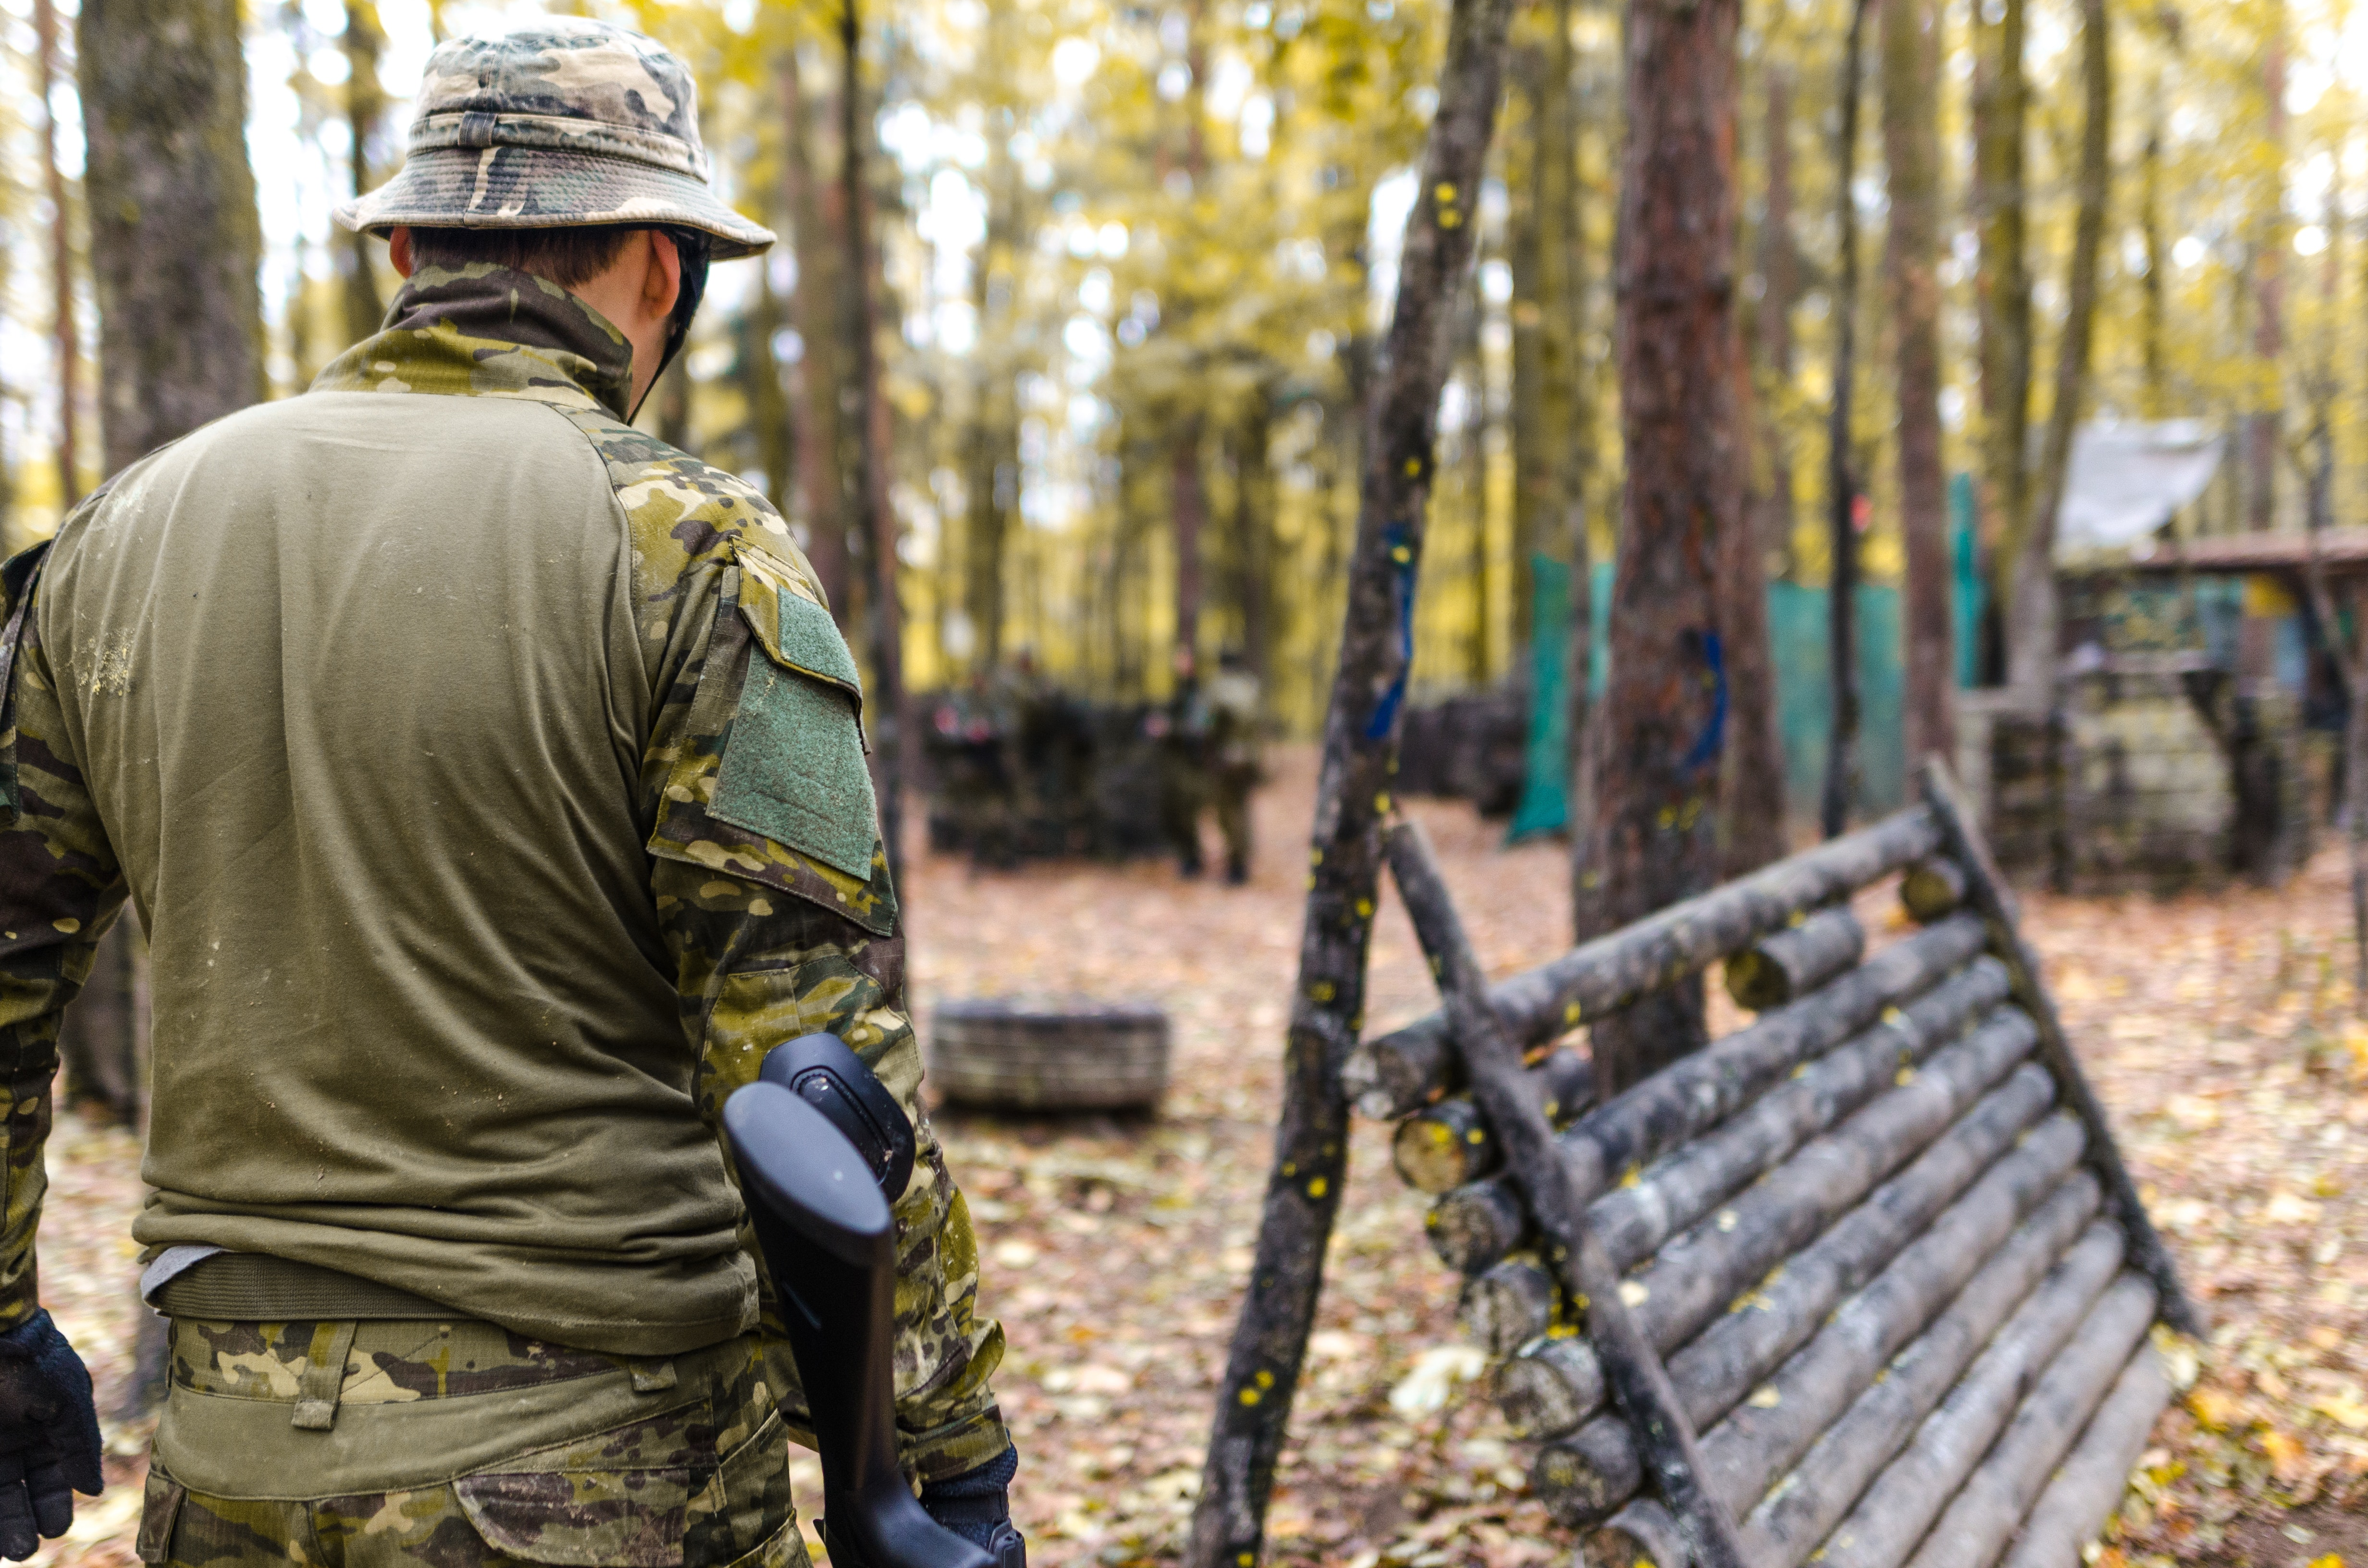 Selective focus photography of man wearing camoflouge suit while holding a gun